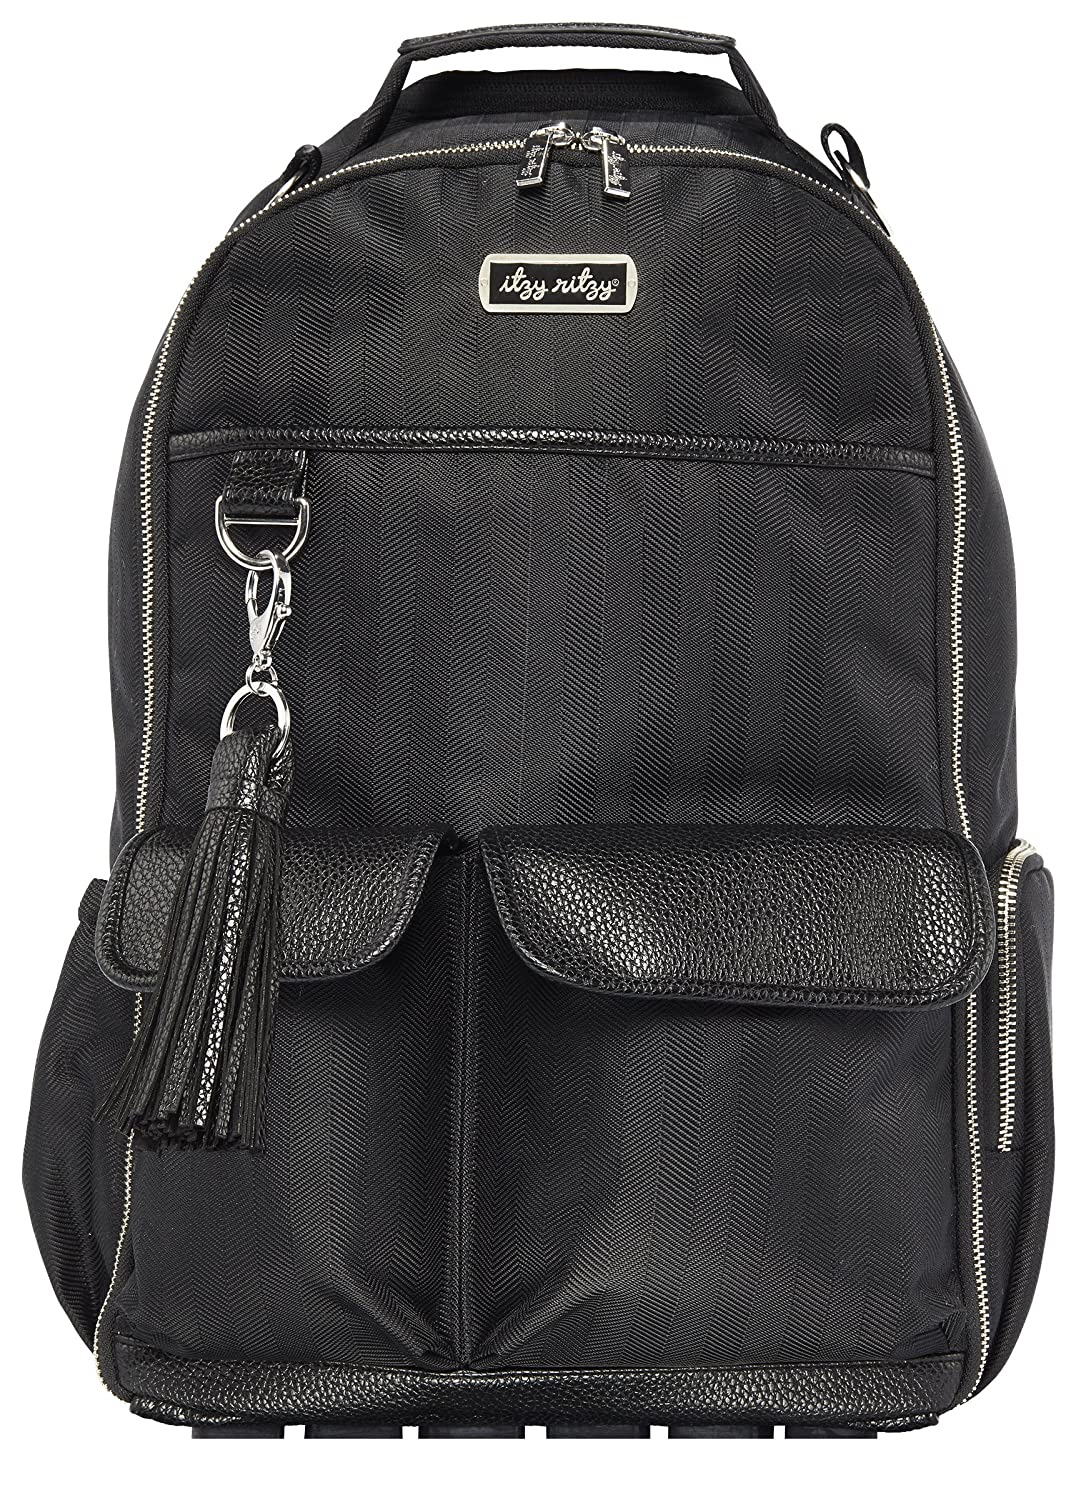 Itzy-Ritzy-Diaper-Bag-Backpack